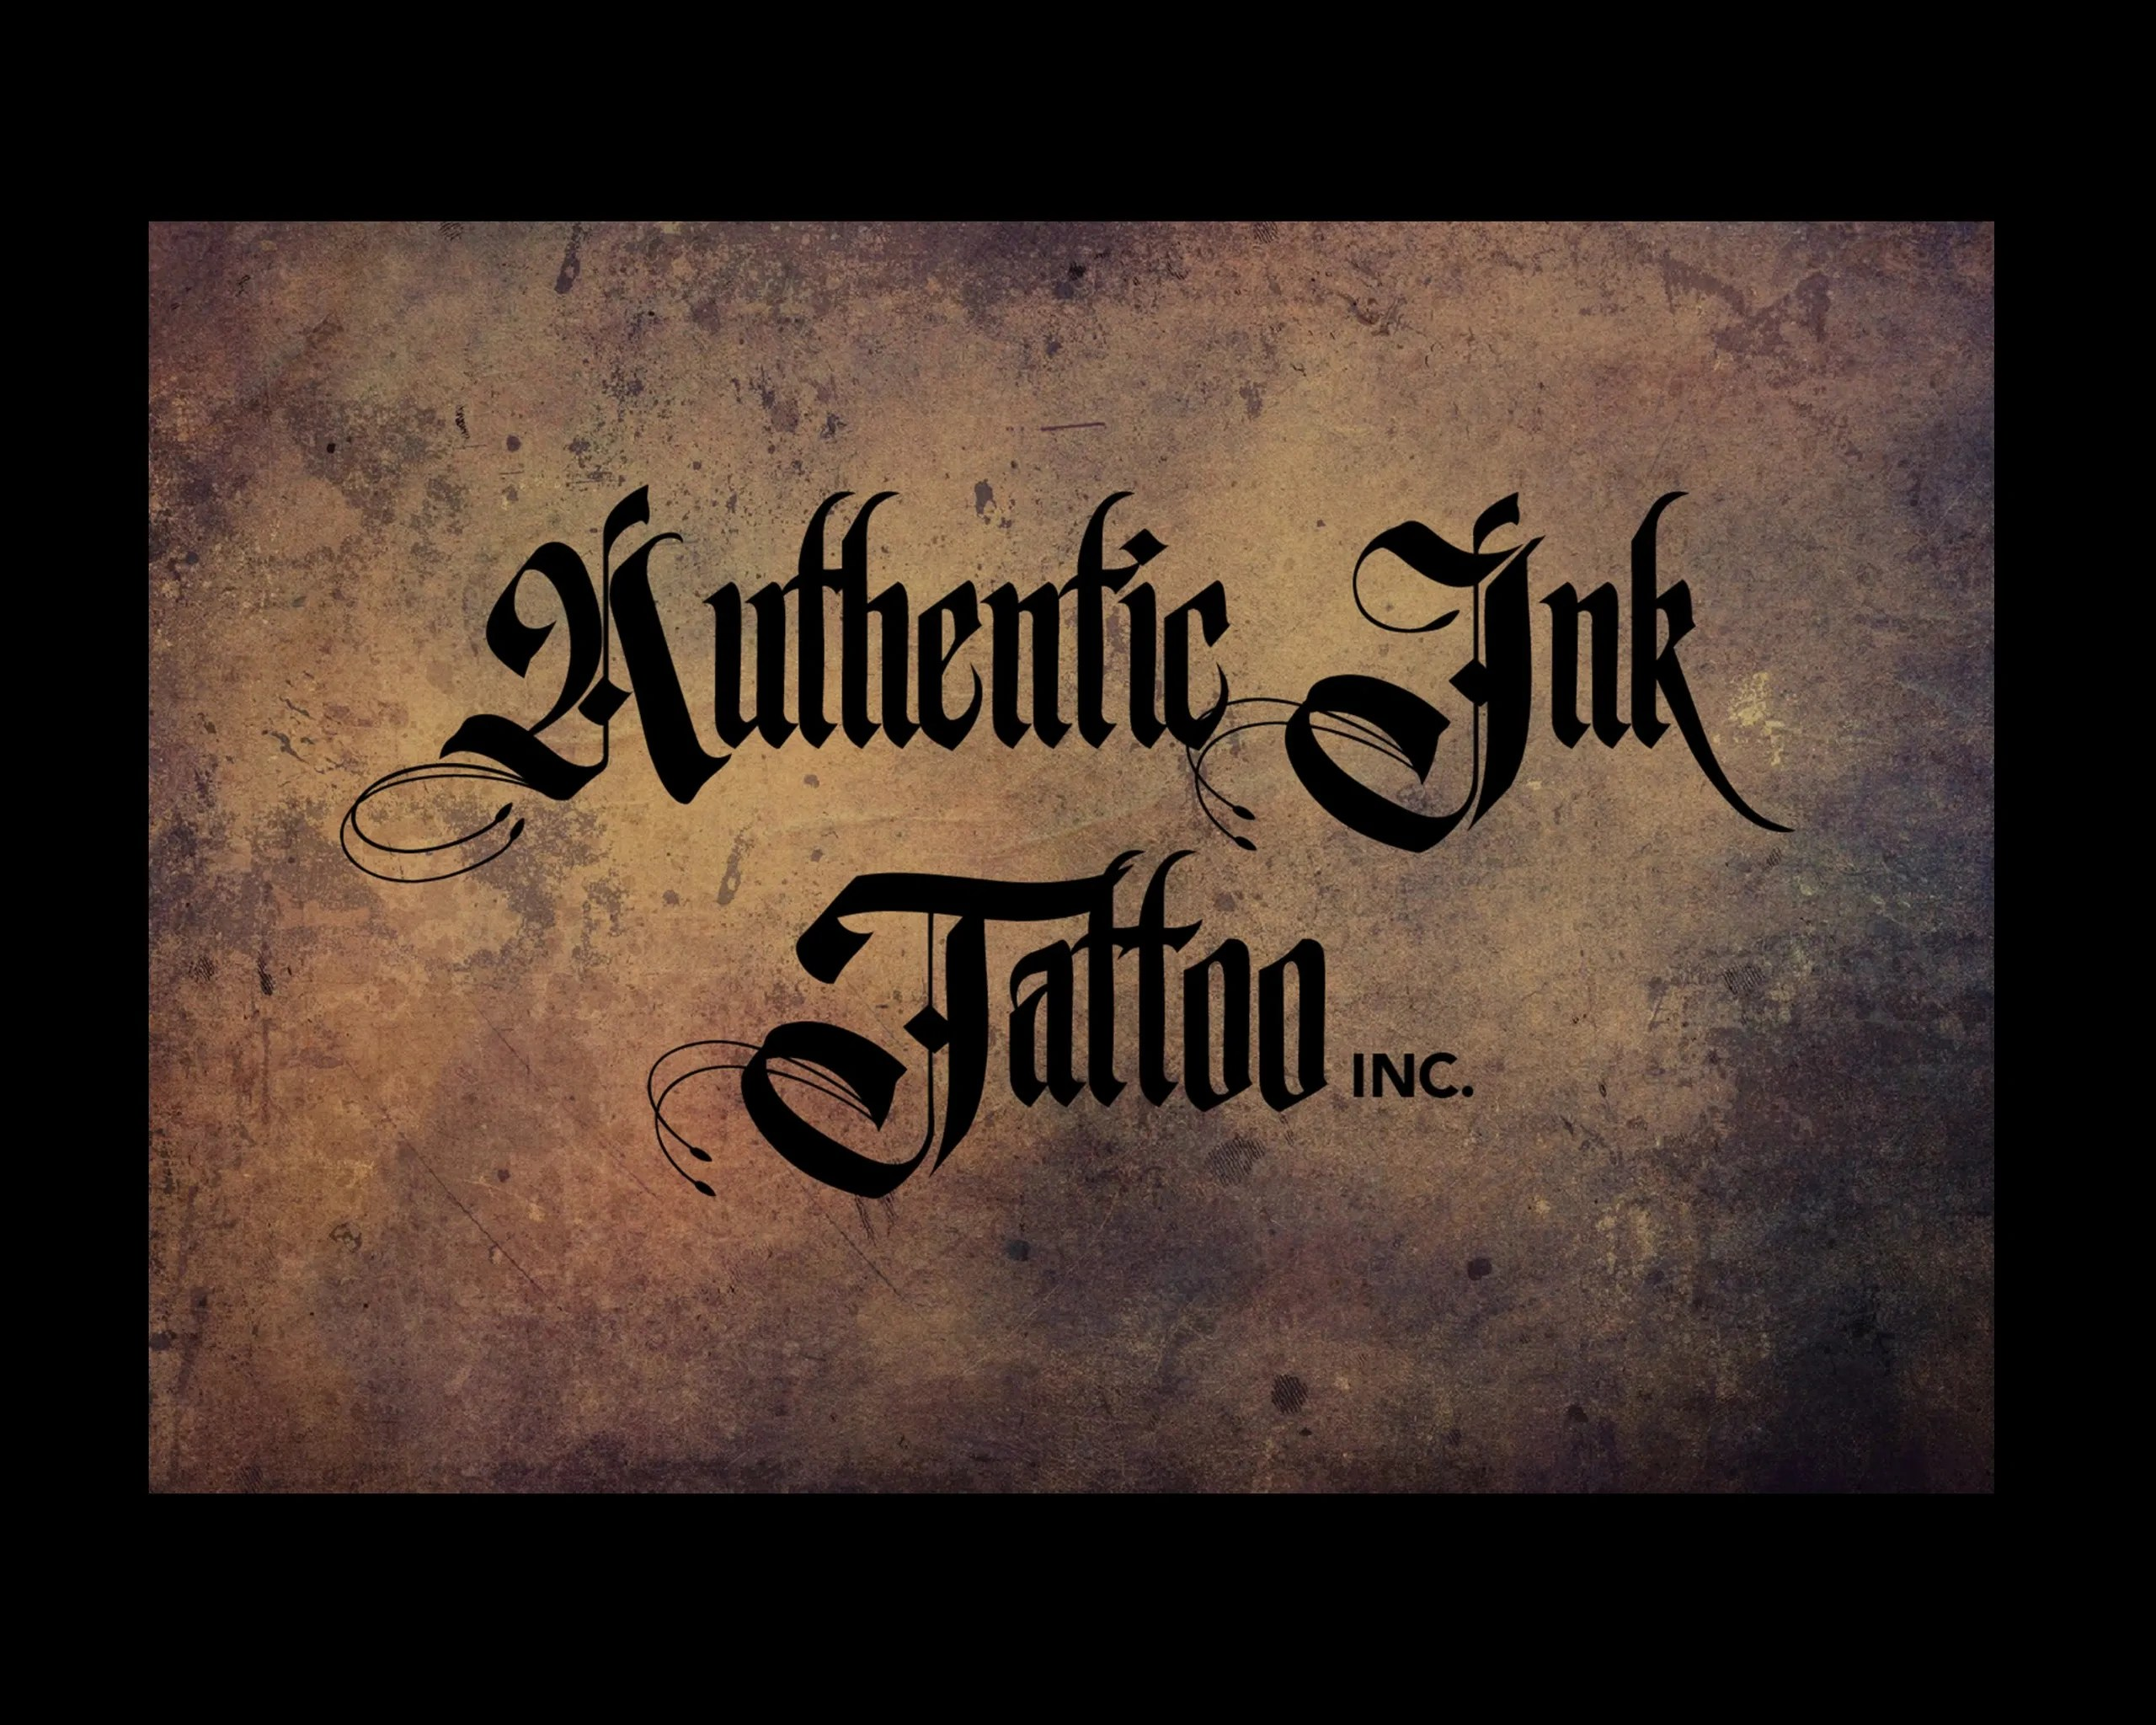 About Authentic Ink Tattoo Inc